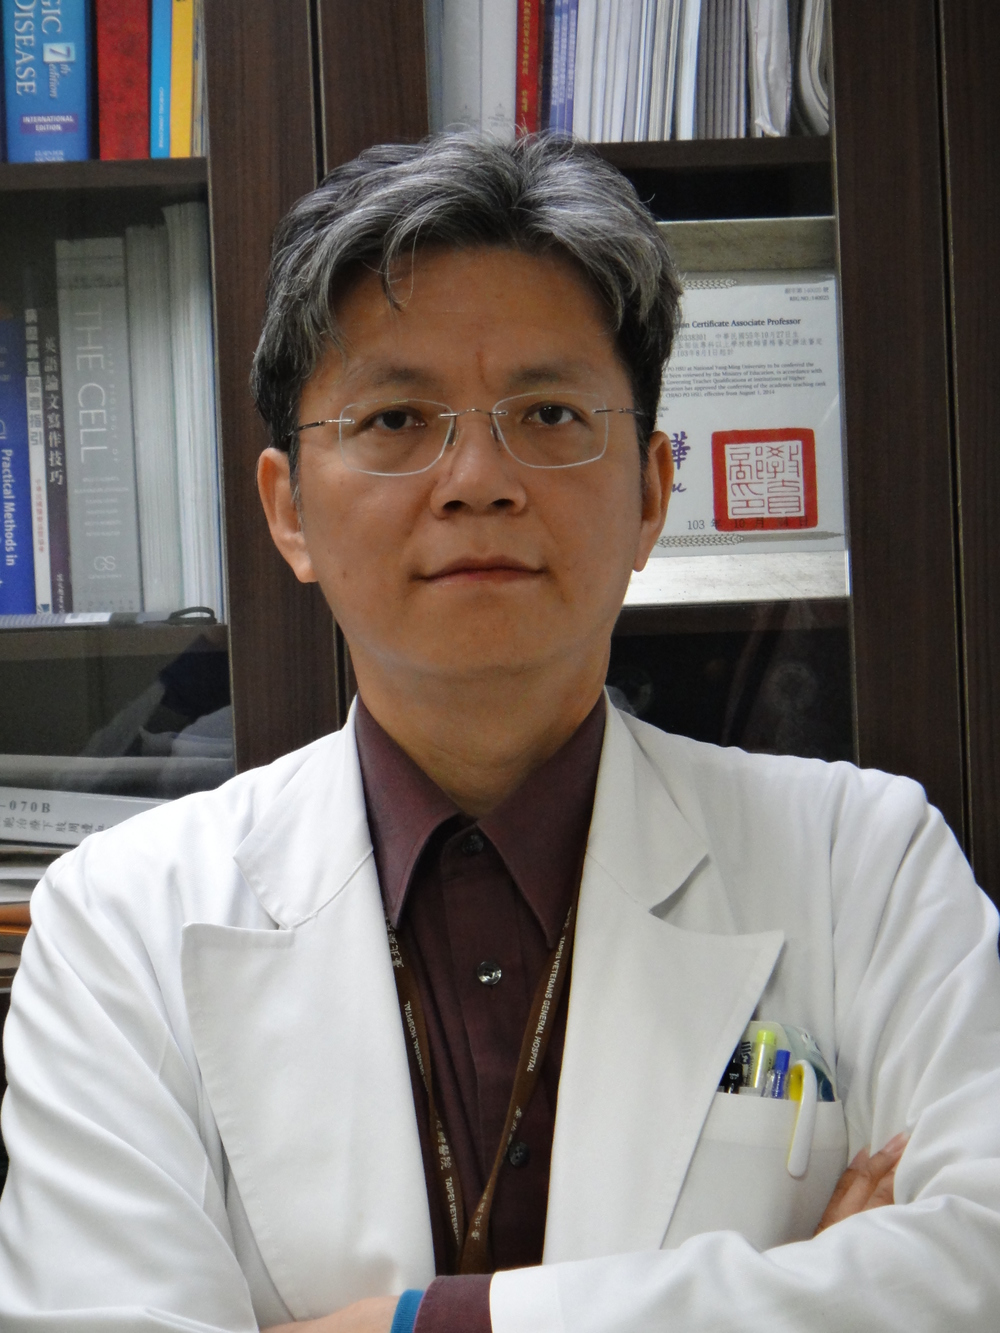 Hsu Chiao-Po MD PhD Email Chiao-Po 2006-2008           Postdoctoral Fellow, UMDNJ, NJ, USA 1985-1992           MD Natinal Yang-Ming University,Taiwan Research Interests: Nampt, Sirt1